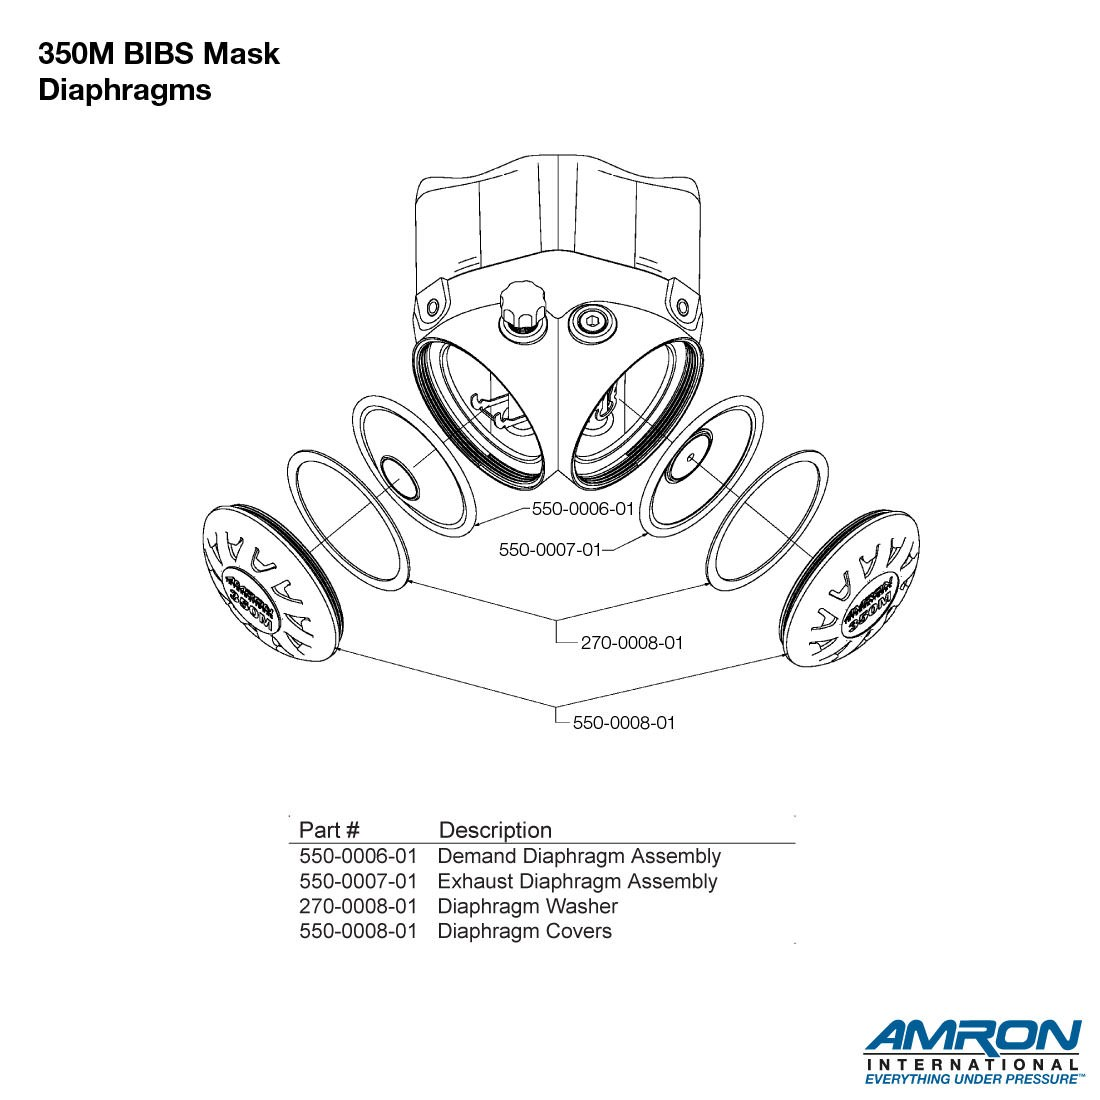 Amron International 350M BIBS - Diaphragms Breakout